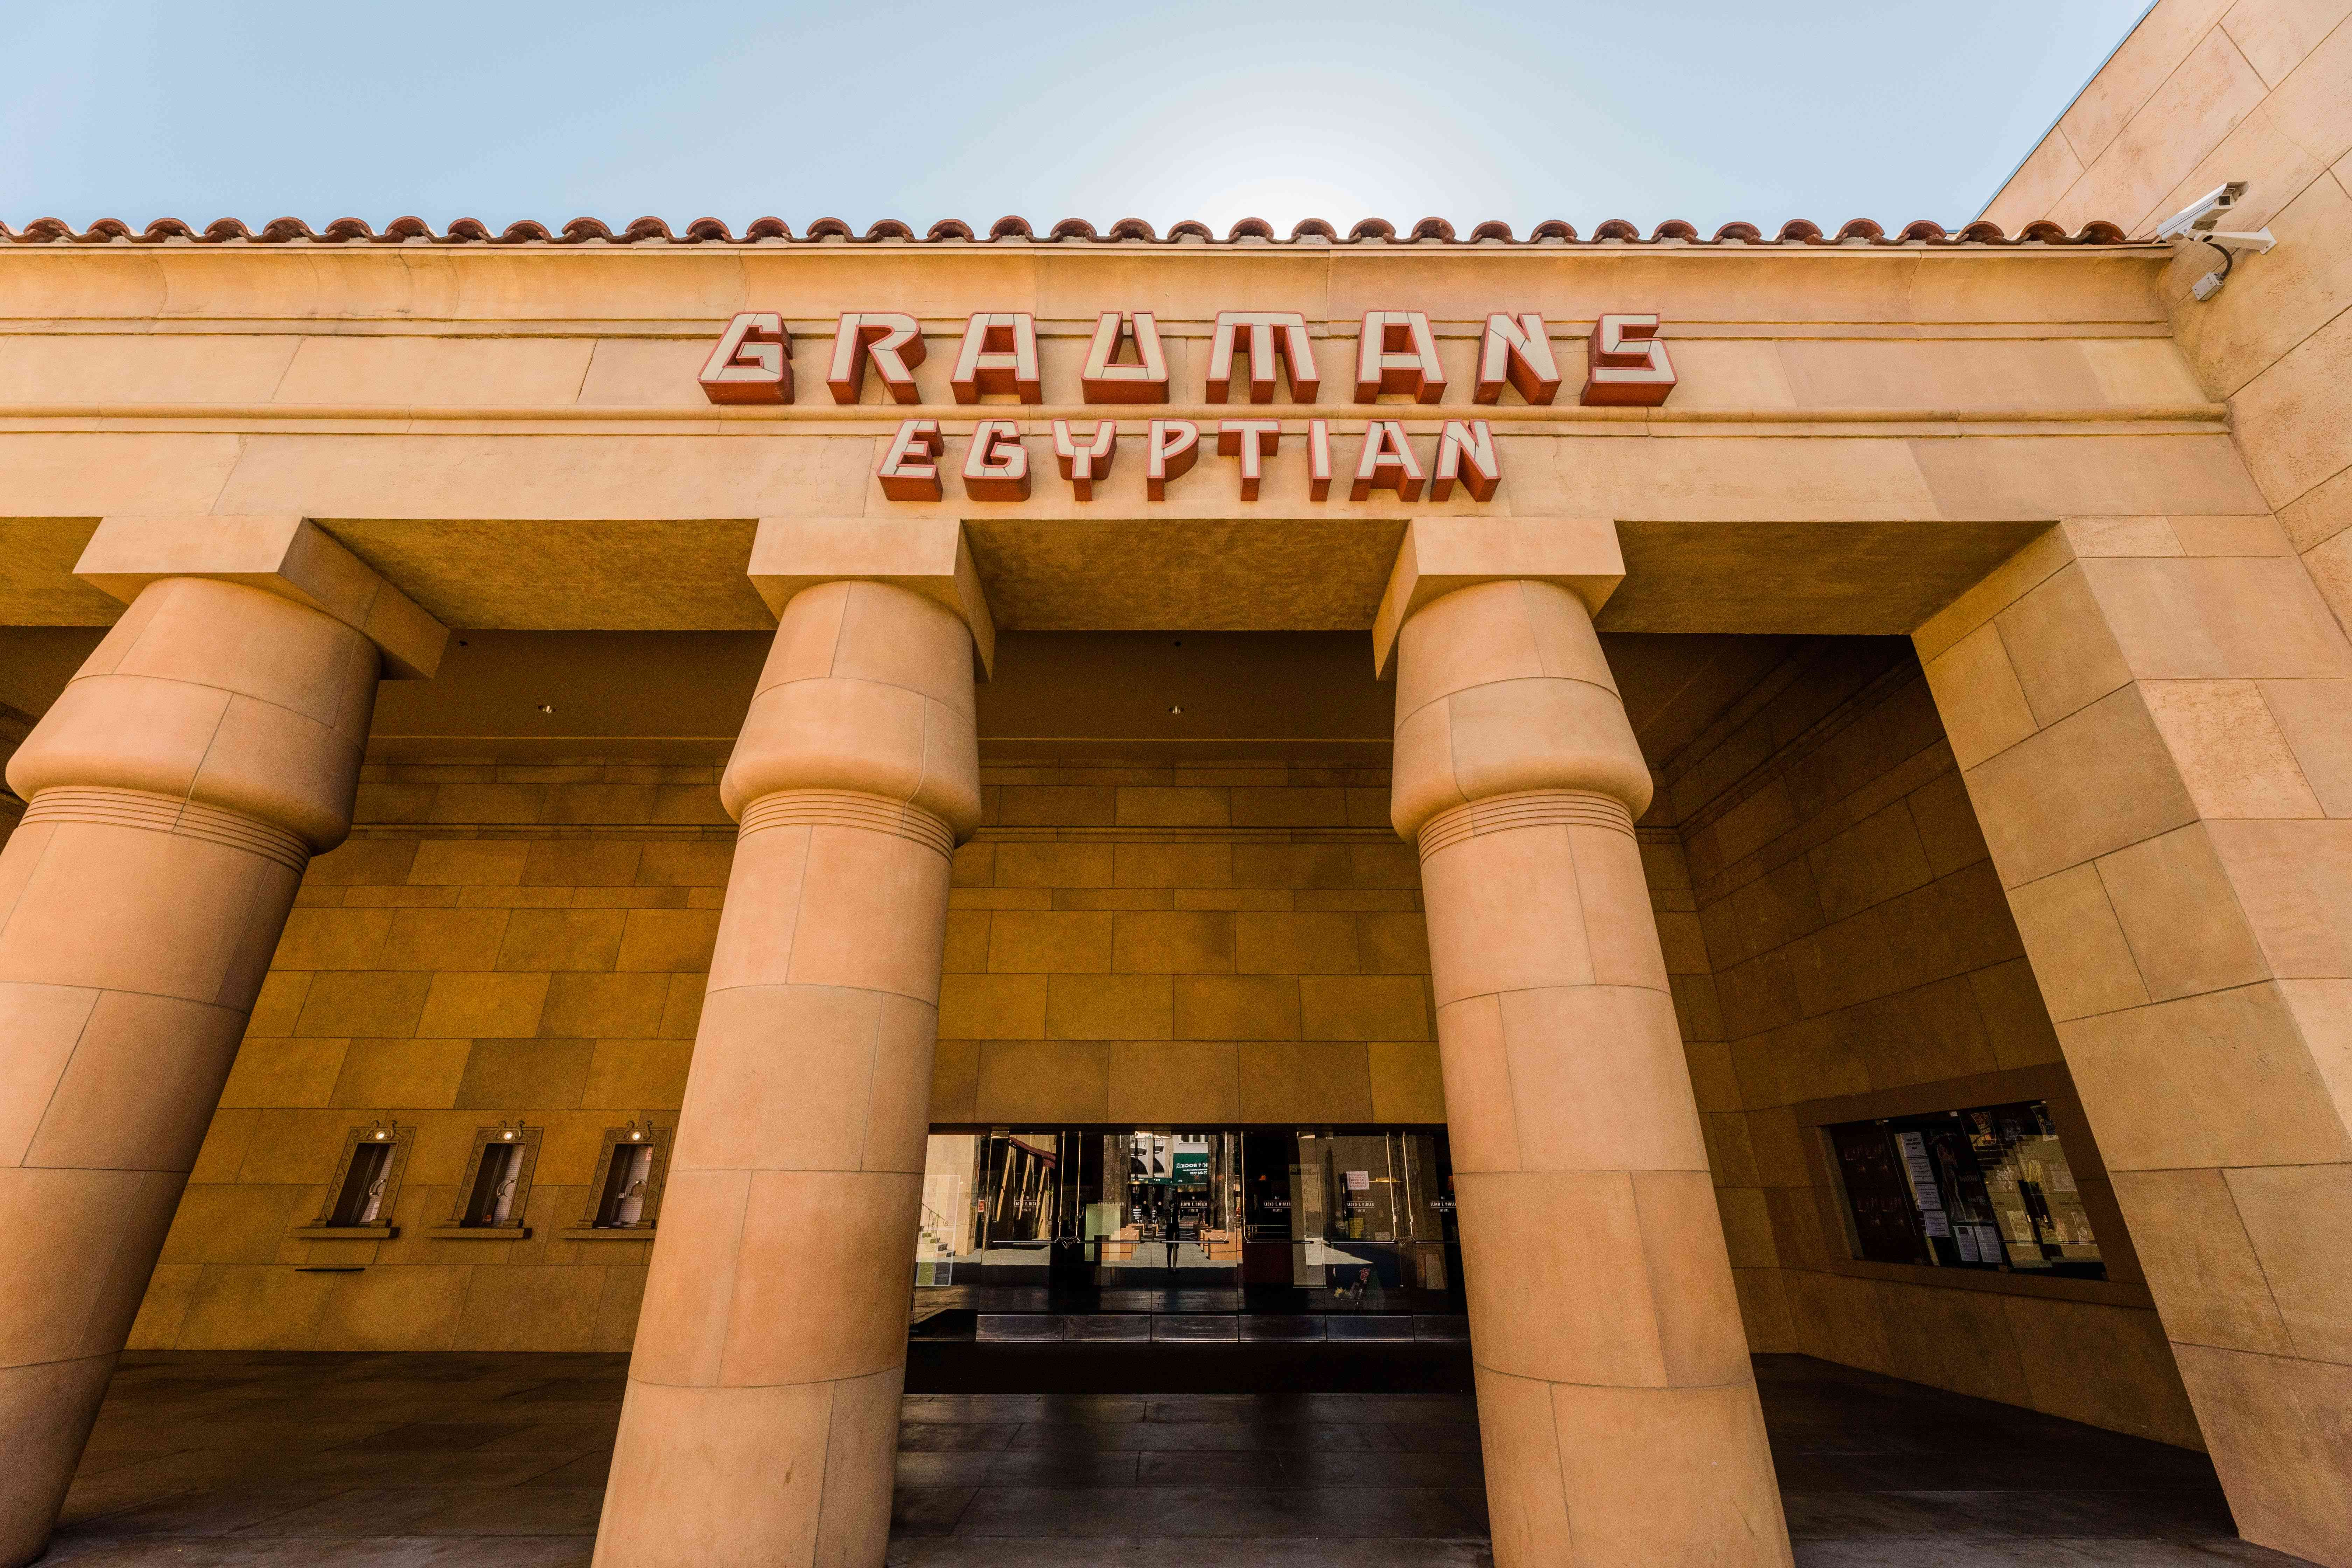 Grauman's Egyptian Theatre in Los Angeles, CA